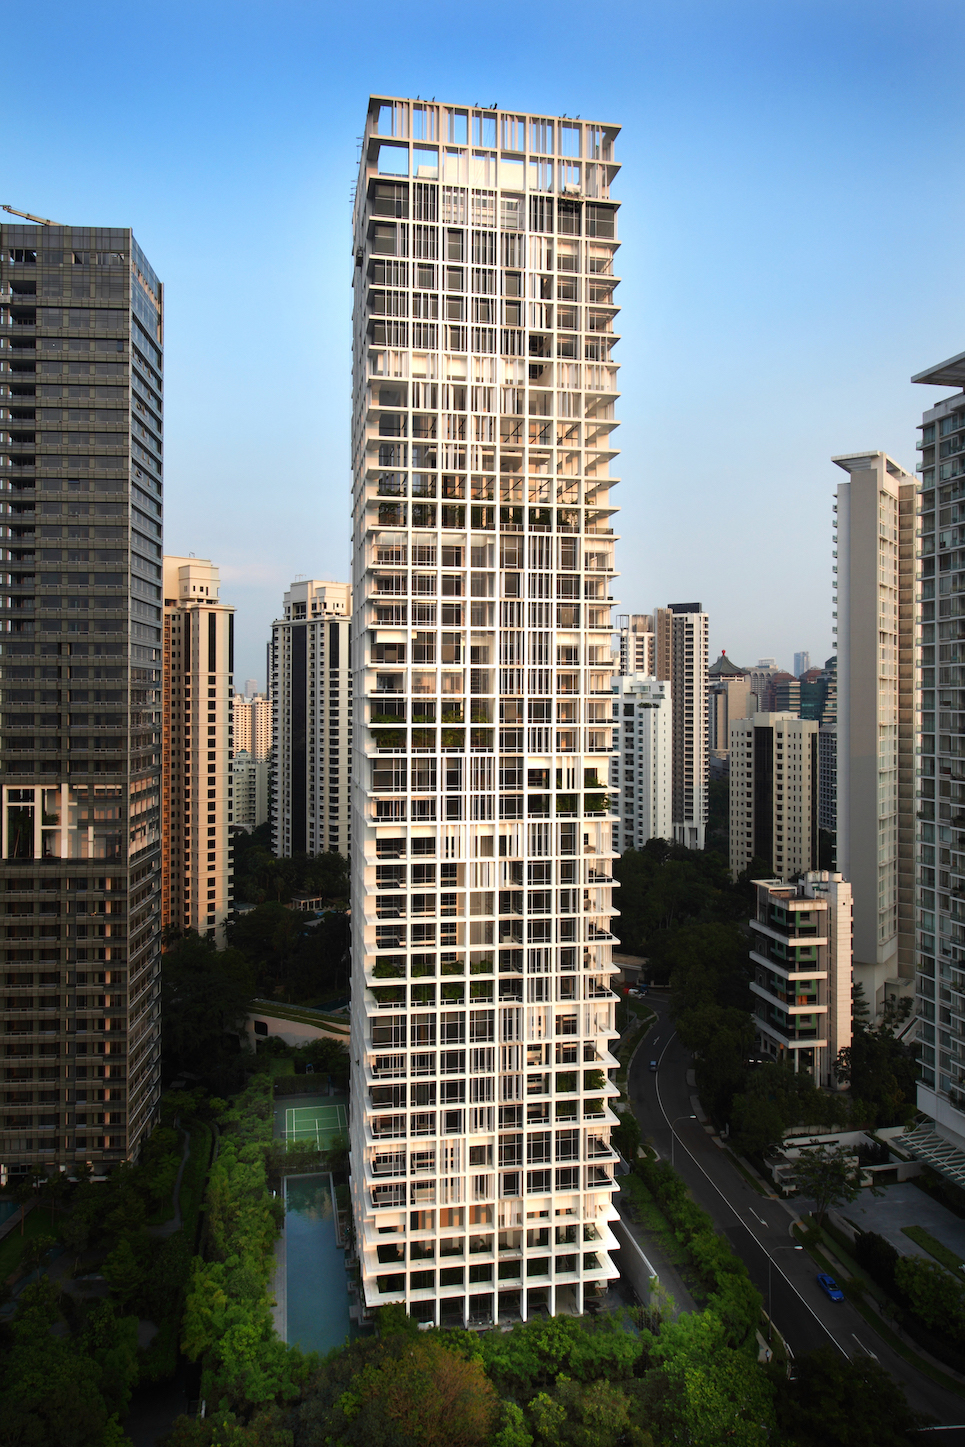 LE NOUVEL ARDMORE - A 3,929 sq ft, four-bedroom unit on the 12th floor of Le Nouvel Ardmore recently fetched $15.7 million or $4,000 psf (Photo: Samuel Isaac Chua/EdgeProp Singapore) - EDGEPROP SINGAPORE